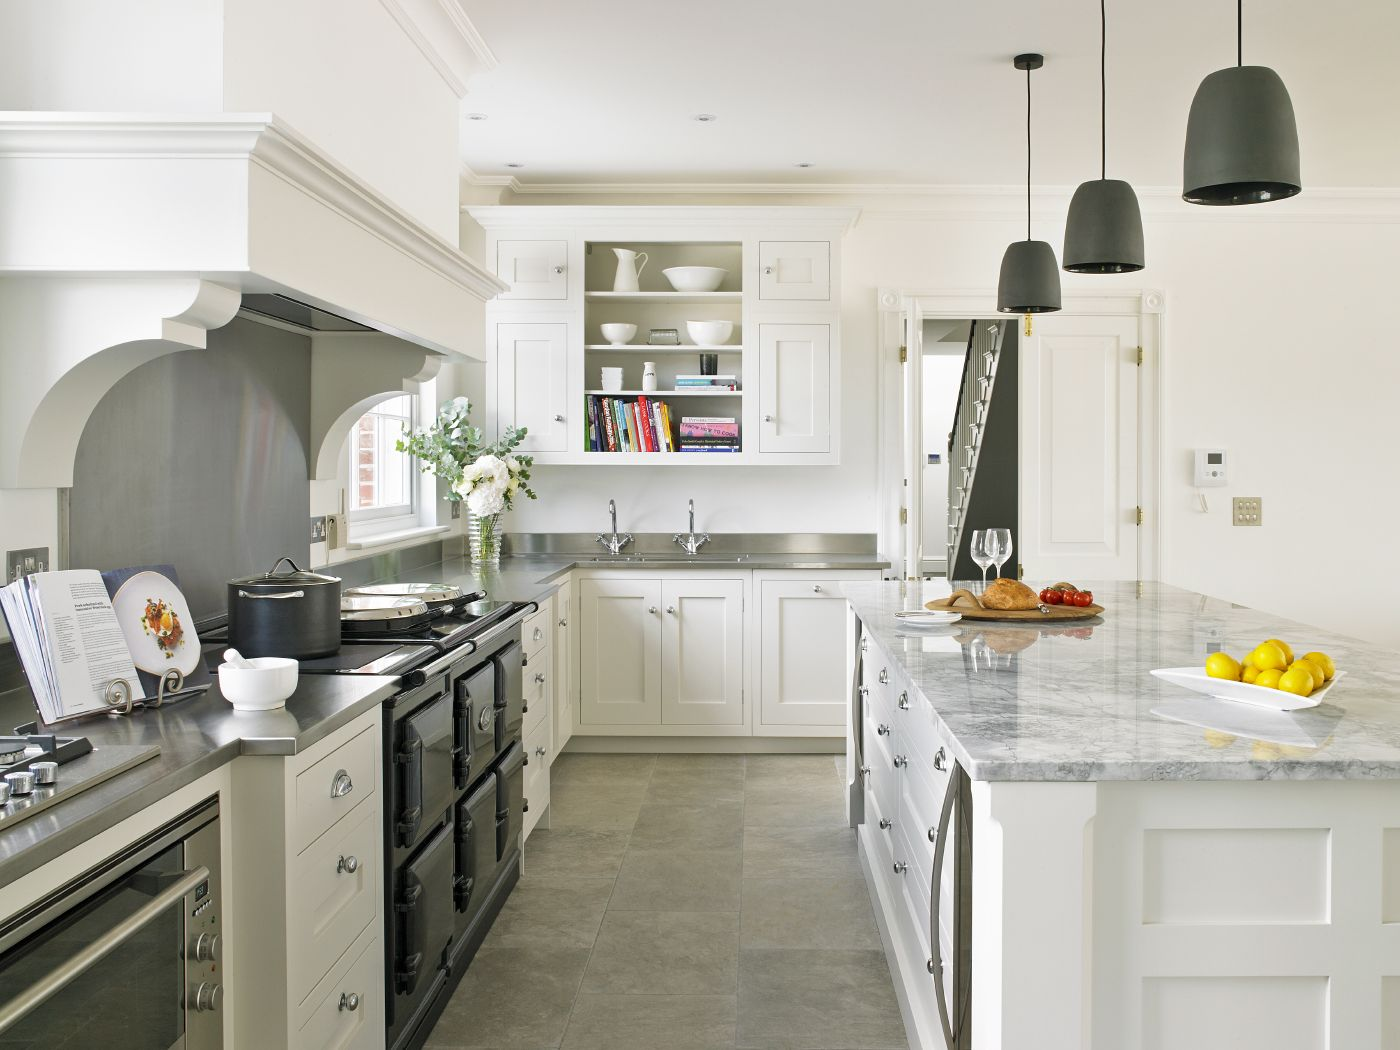 Traditional Style White Kitchen Design For A New Build With 5 Oven AGA In  Black, Chimney Extractor Canopy And Large Island With Twin Wine Coolers At  Either ...